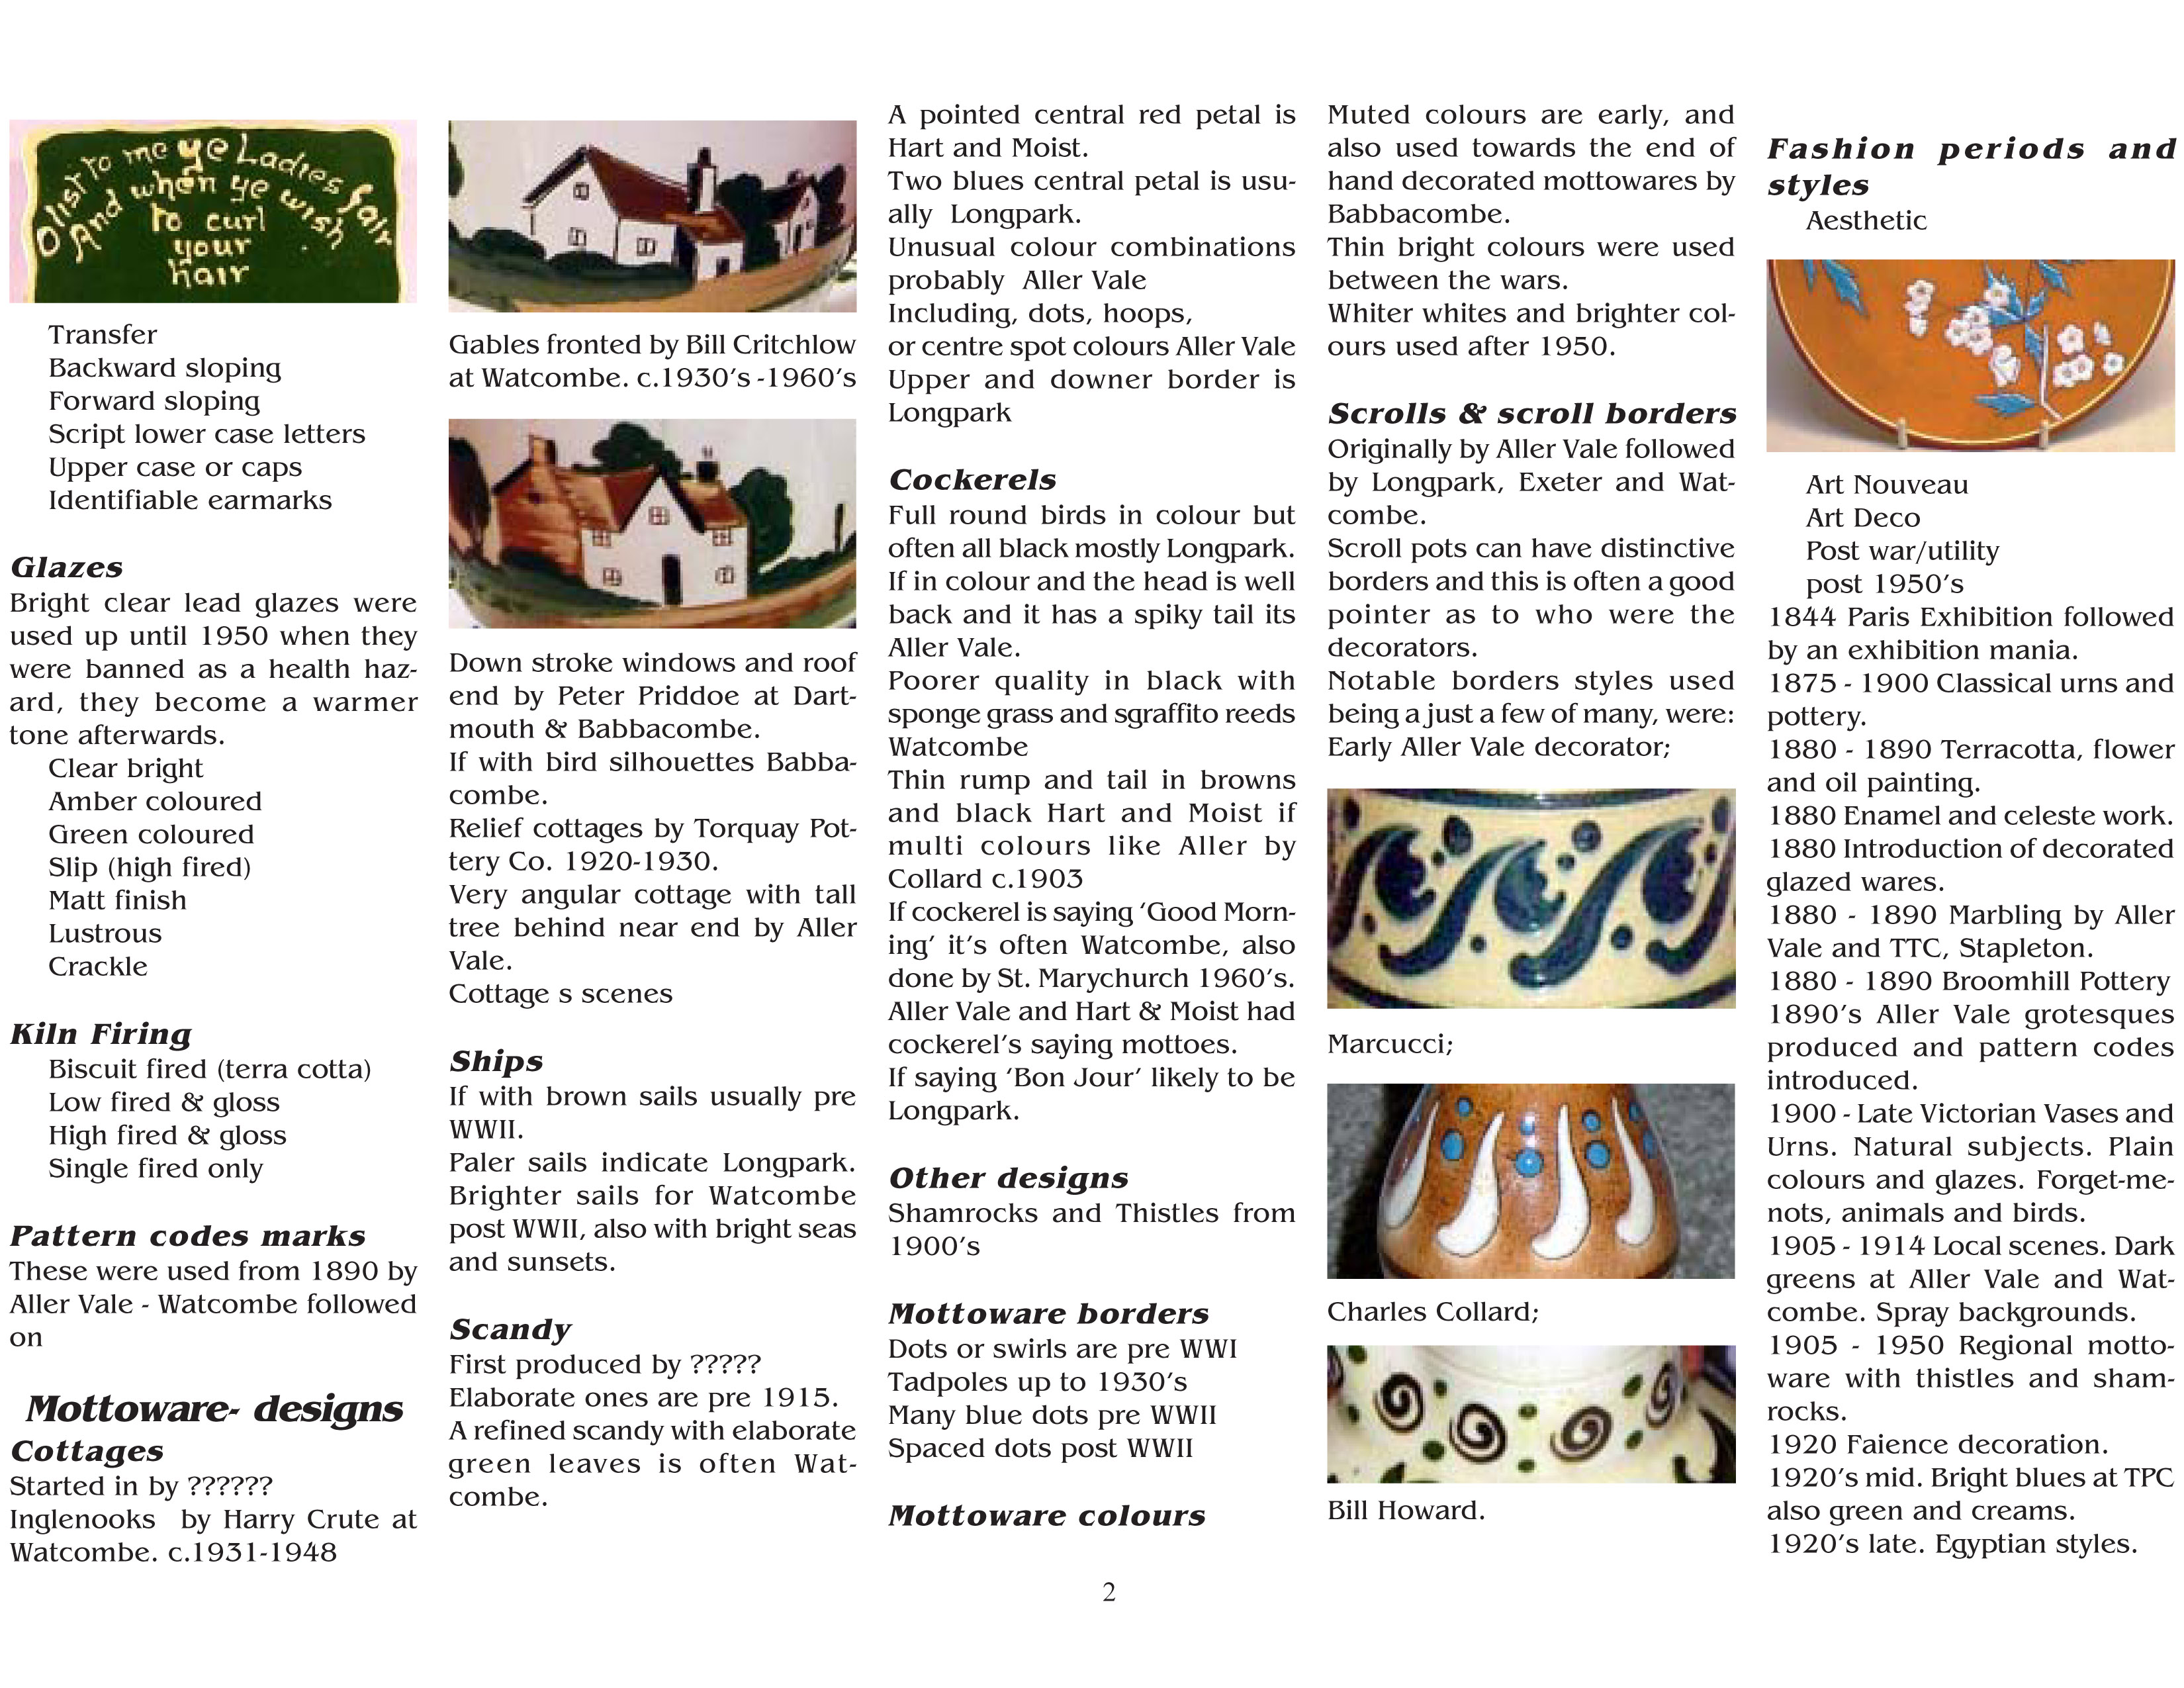 pointers2 - Hints to identifcating pottery.